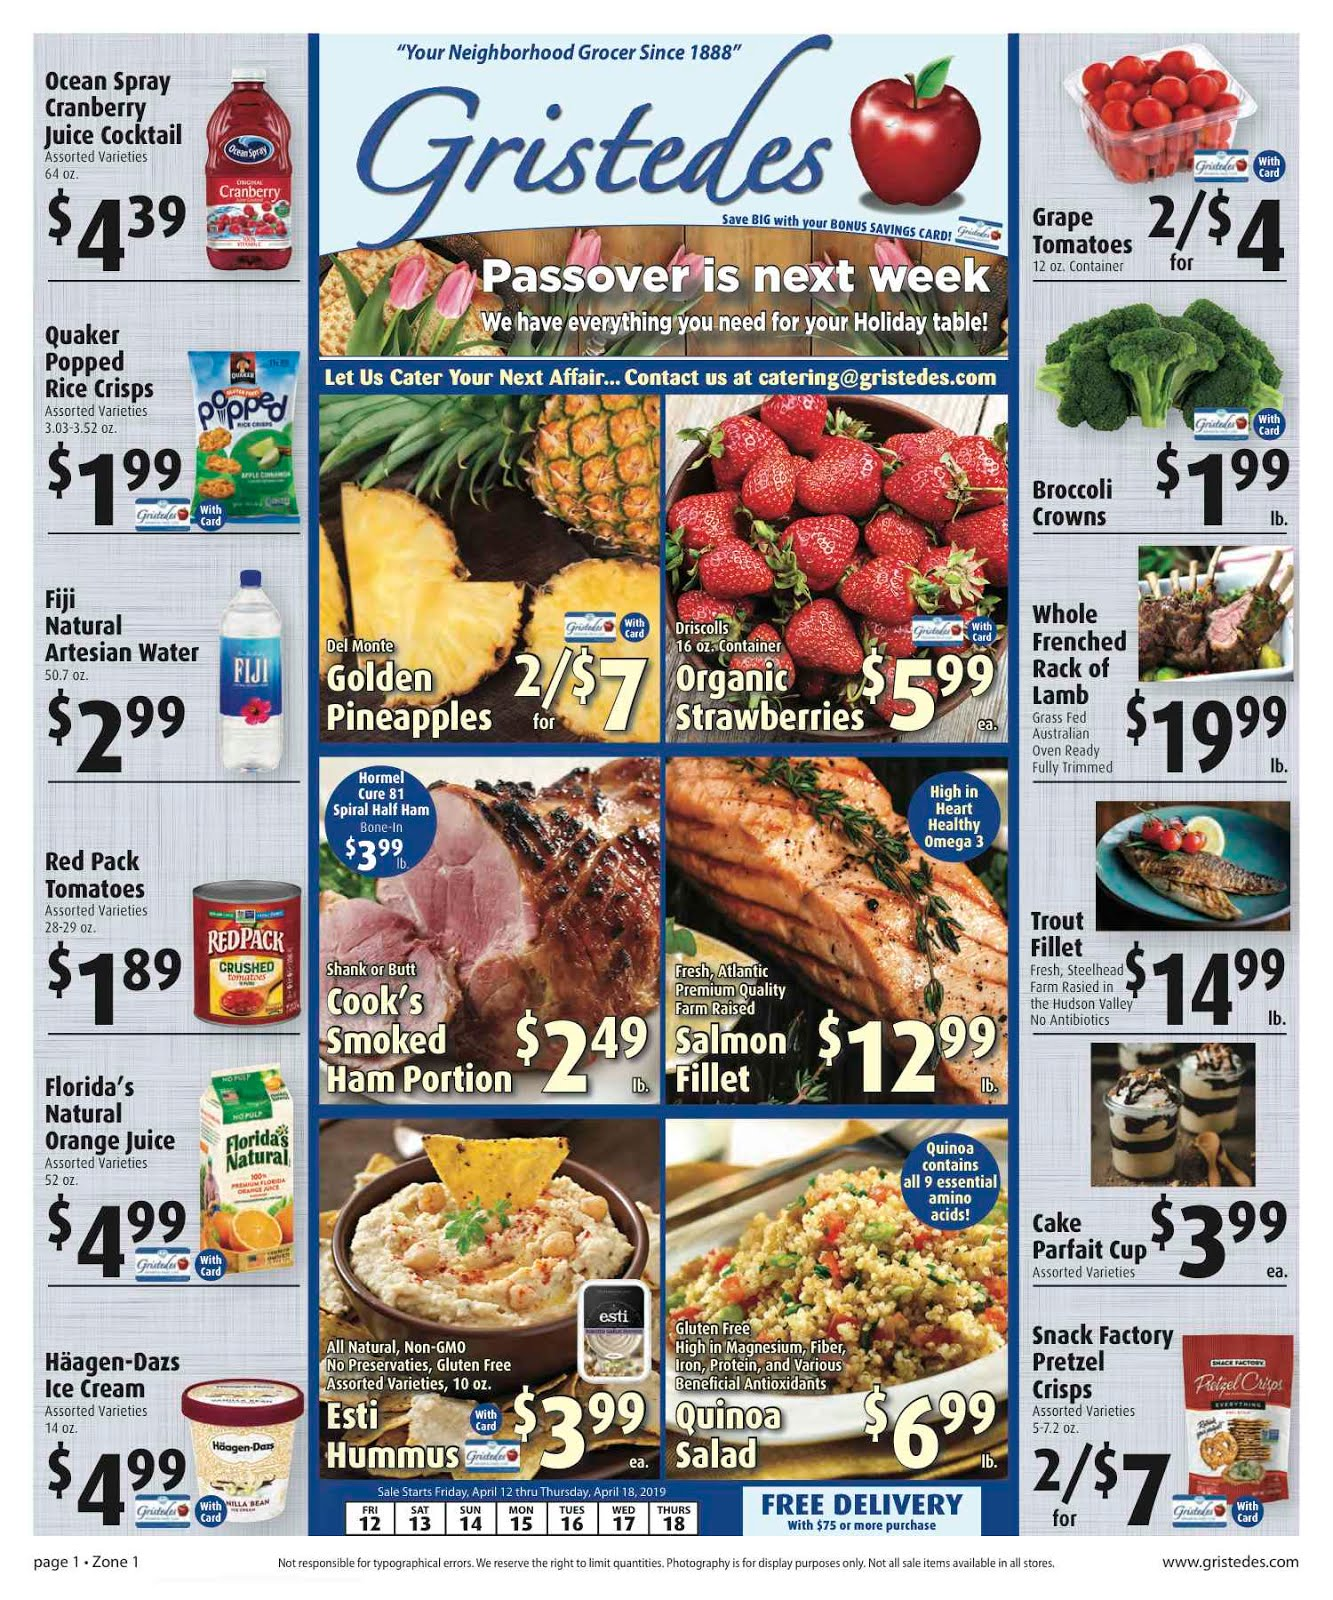 CHECK OUT ROOSEVELT ISLAND GRISTEDES Products, Sales & Specials For April 12 - April 18